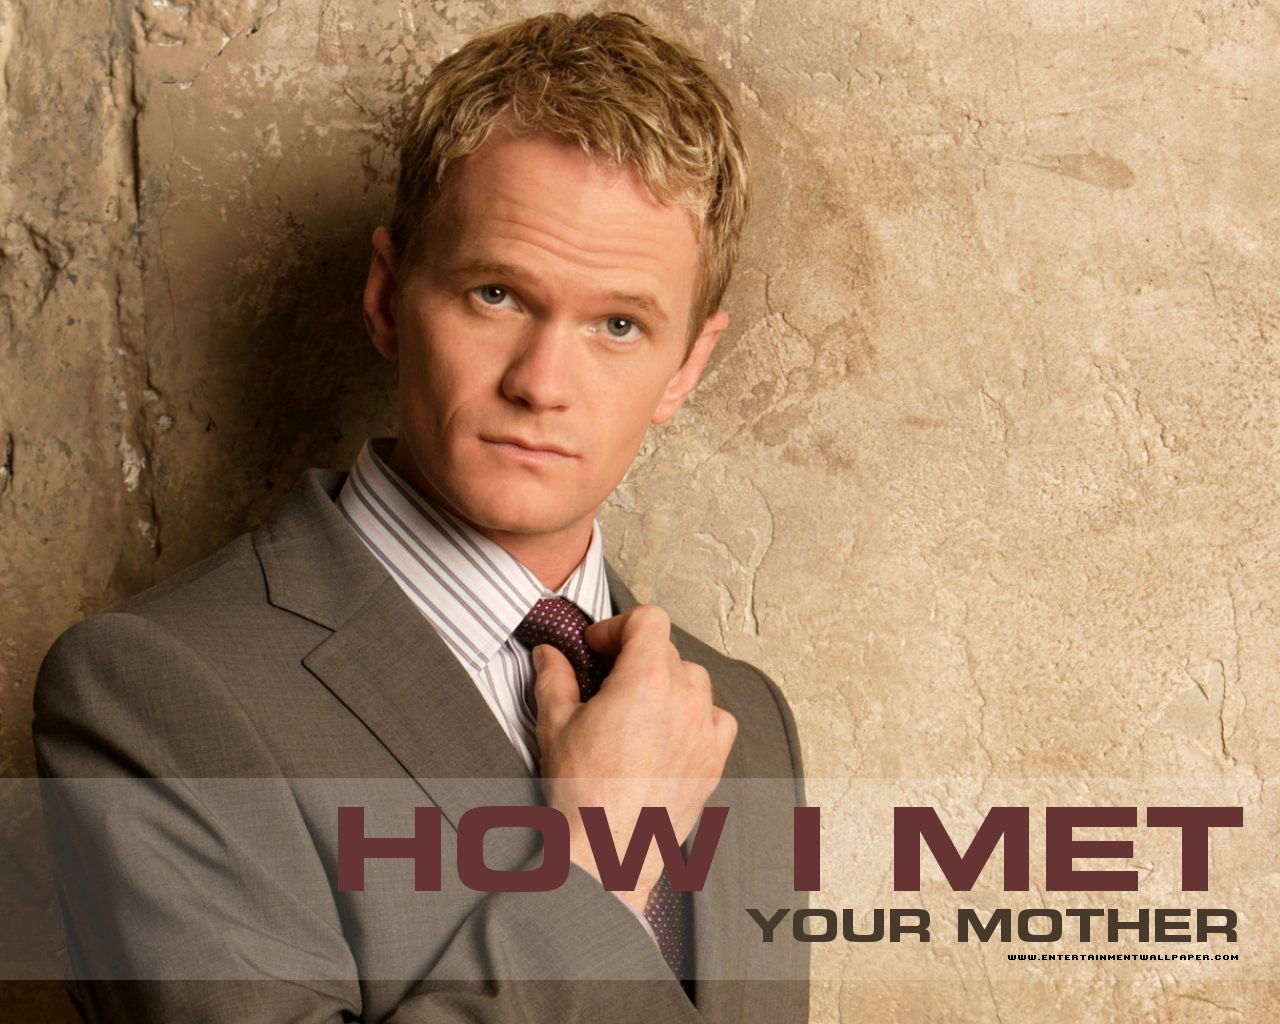 http://3.bp.blogspot.com/-JAueJHYdryk/UM5dNgVZDRI/AAAAAAACKfU/l5Kct6bnyE8/s1600/How_I_Met_Your_Mother_Poster6.jpg